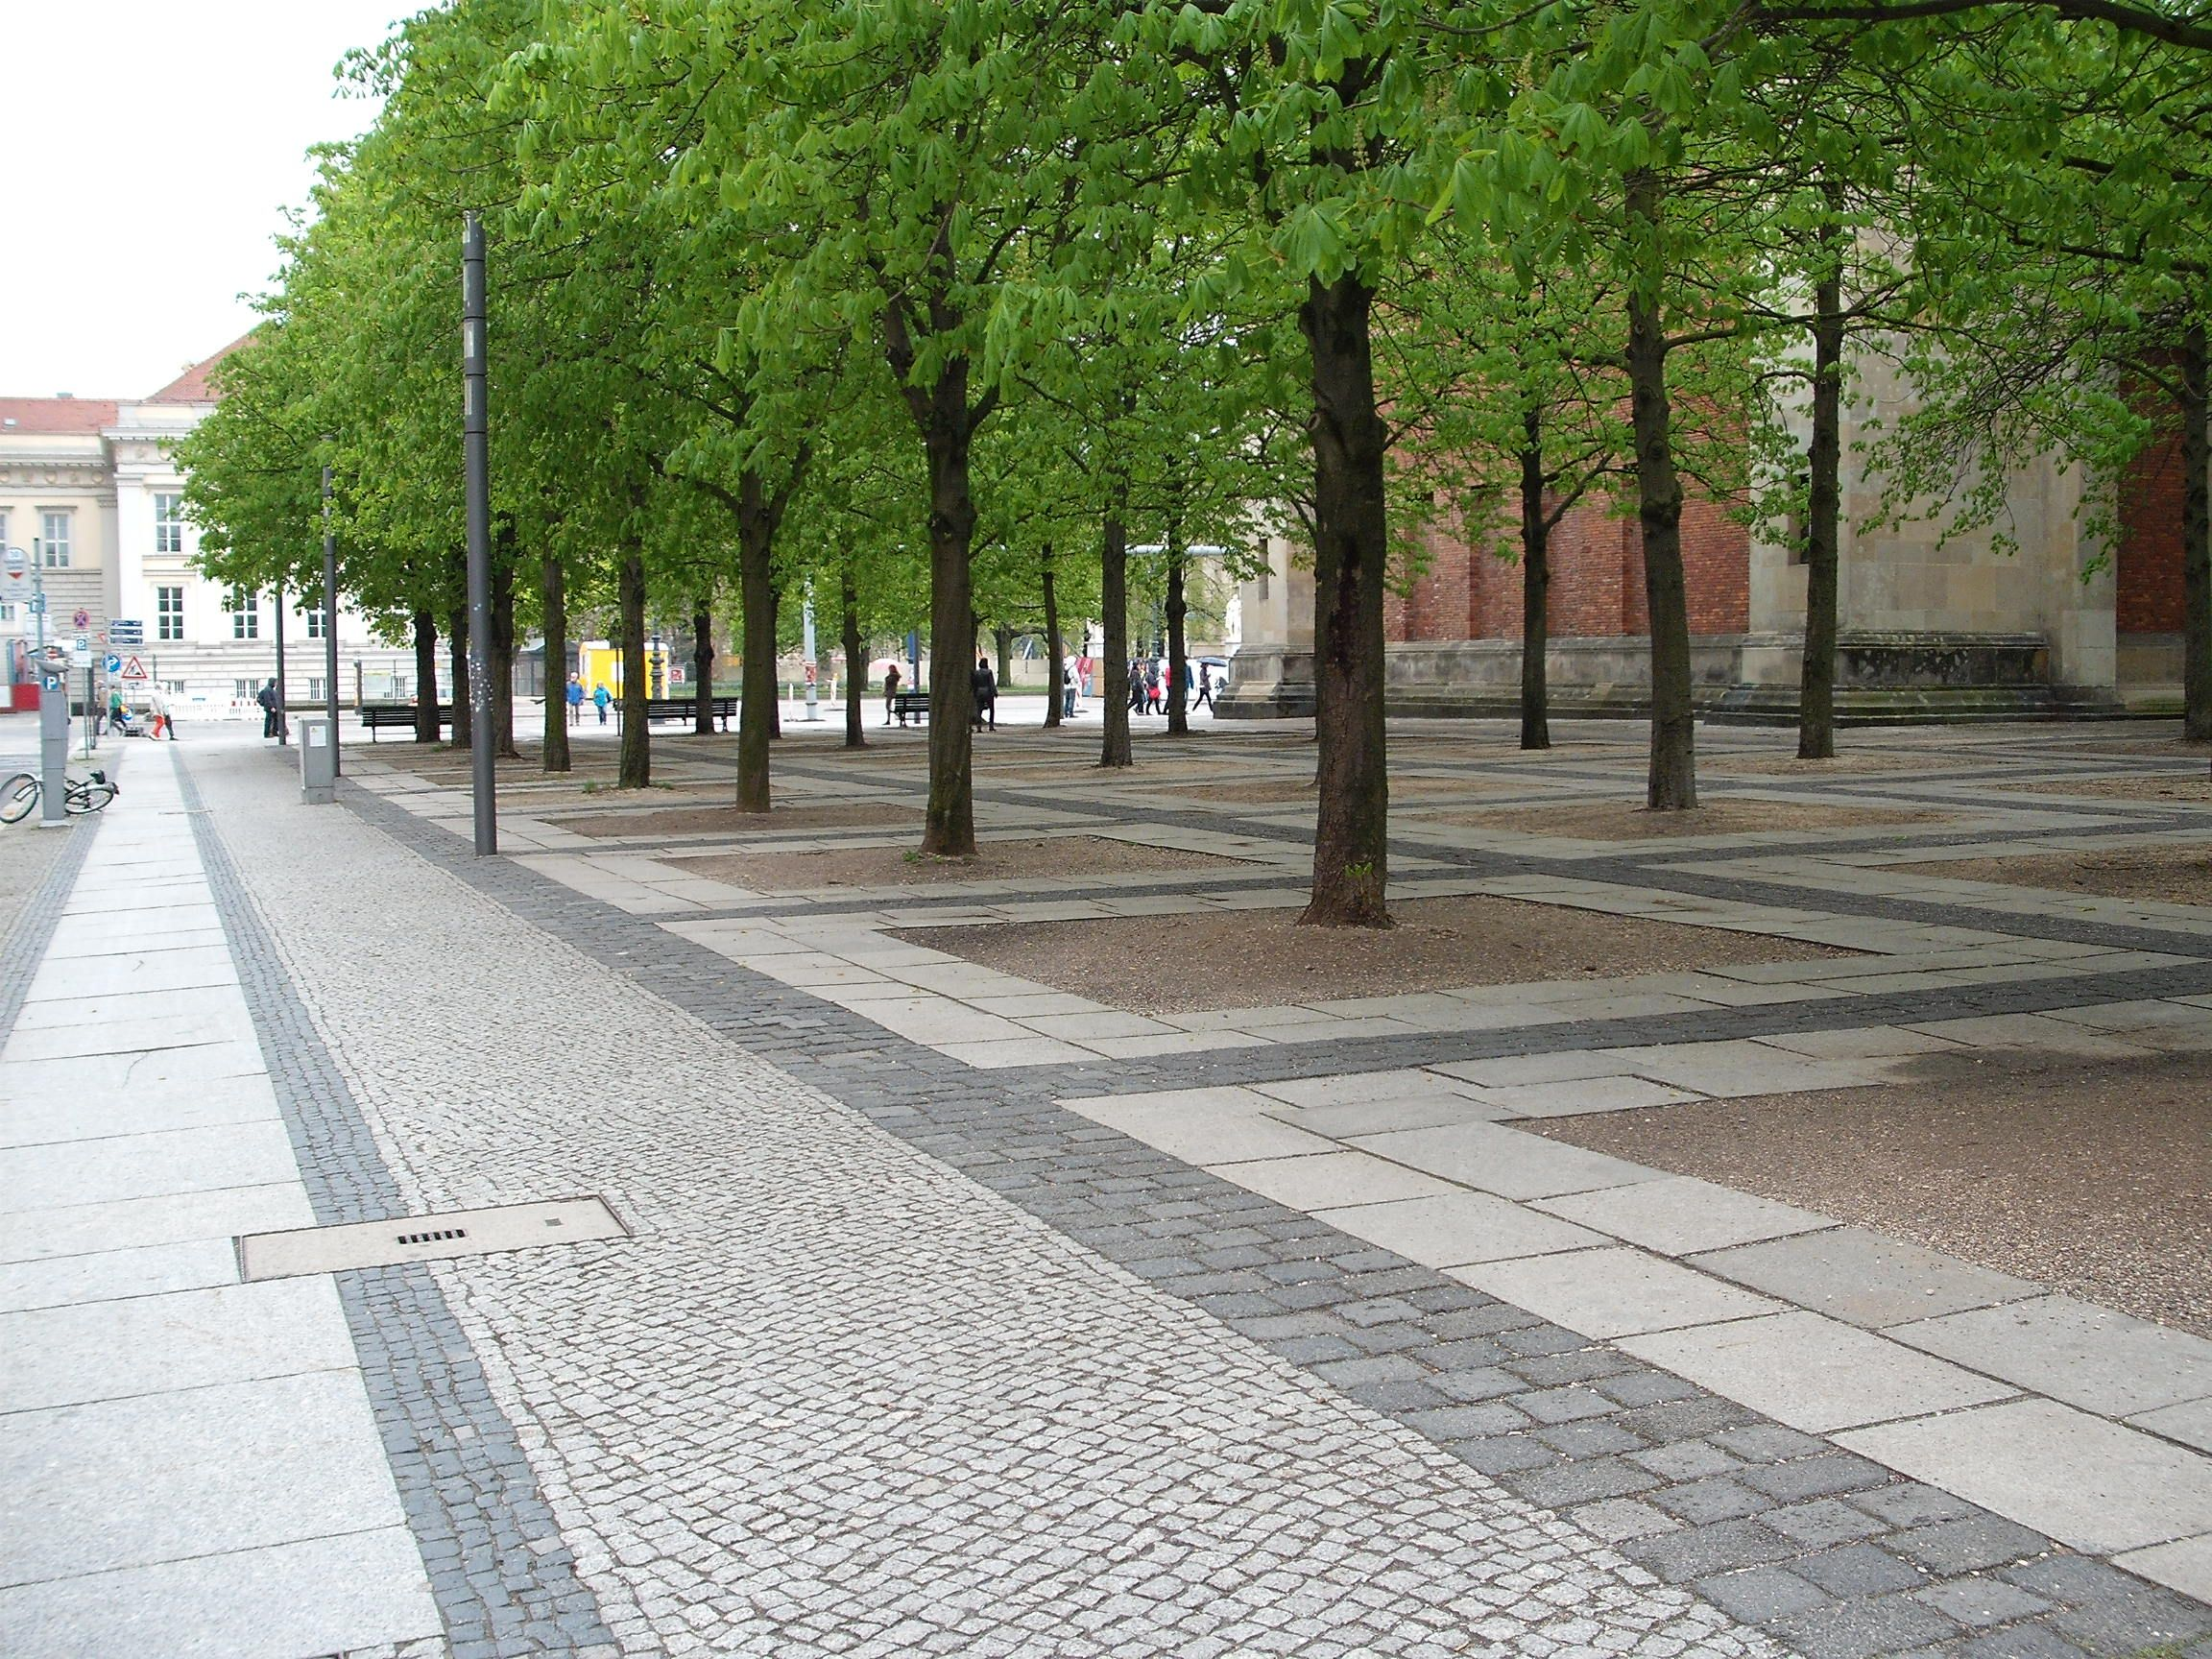 berlin pavement streetscape germany paving pinterest